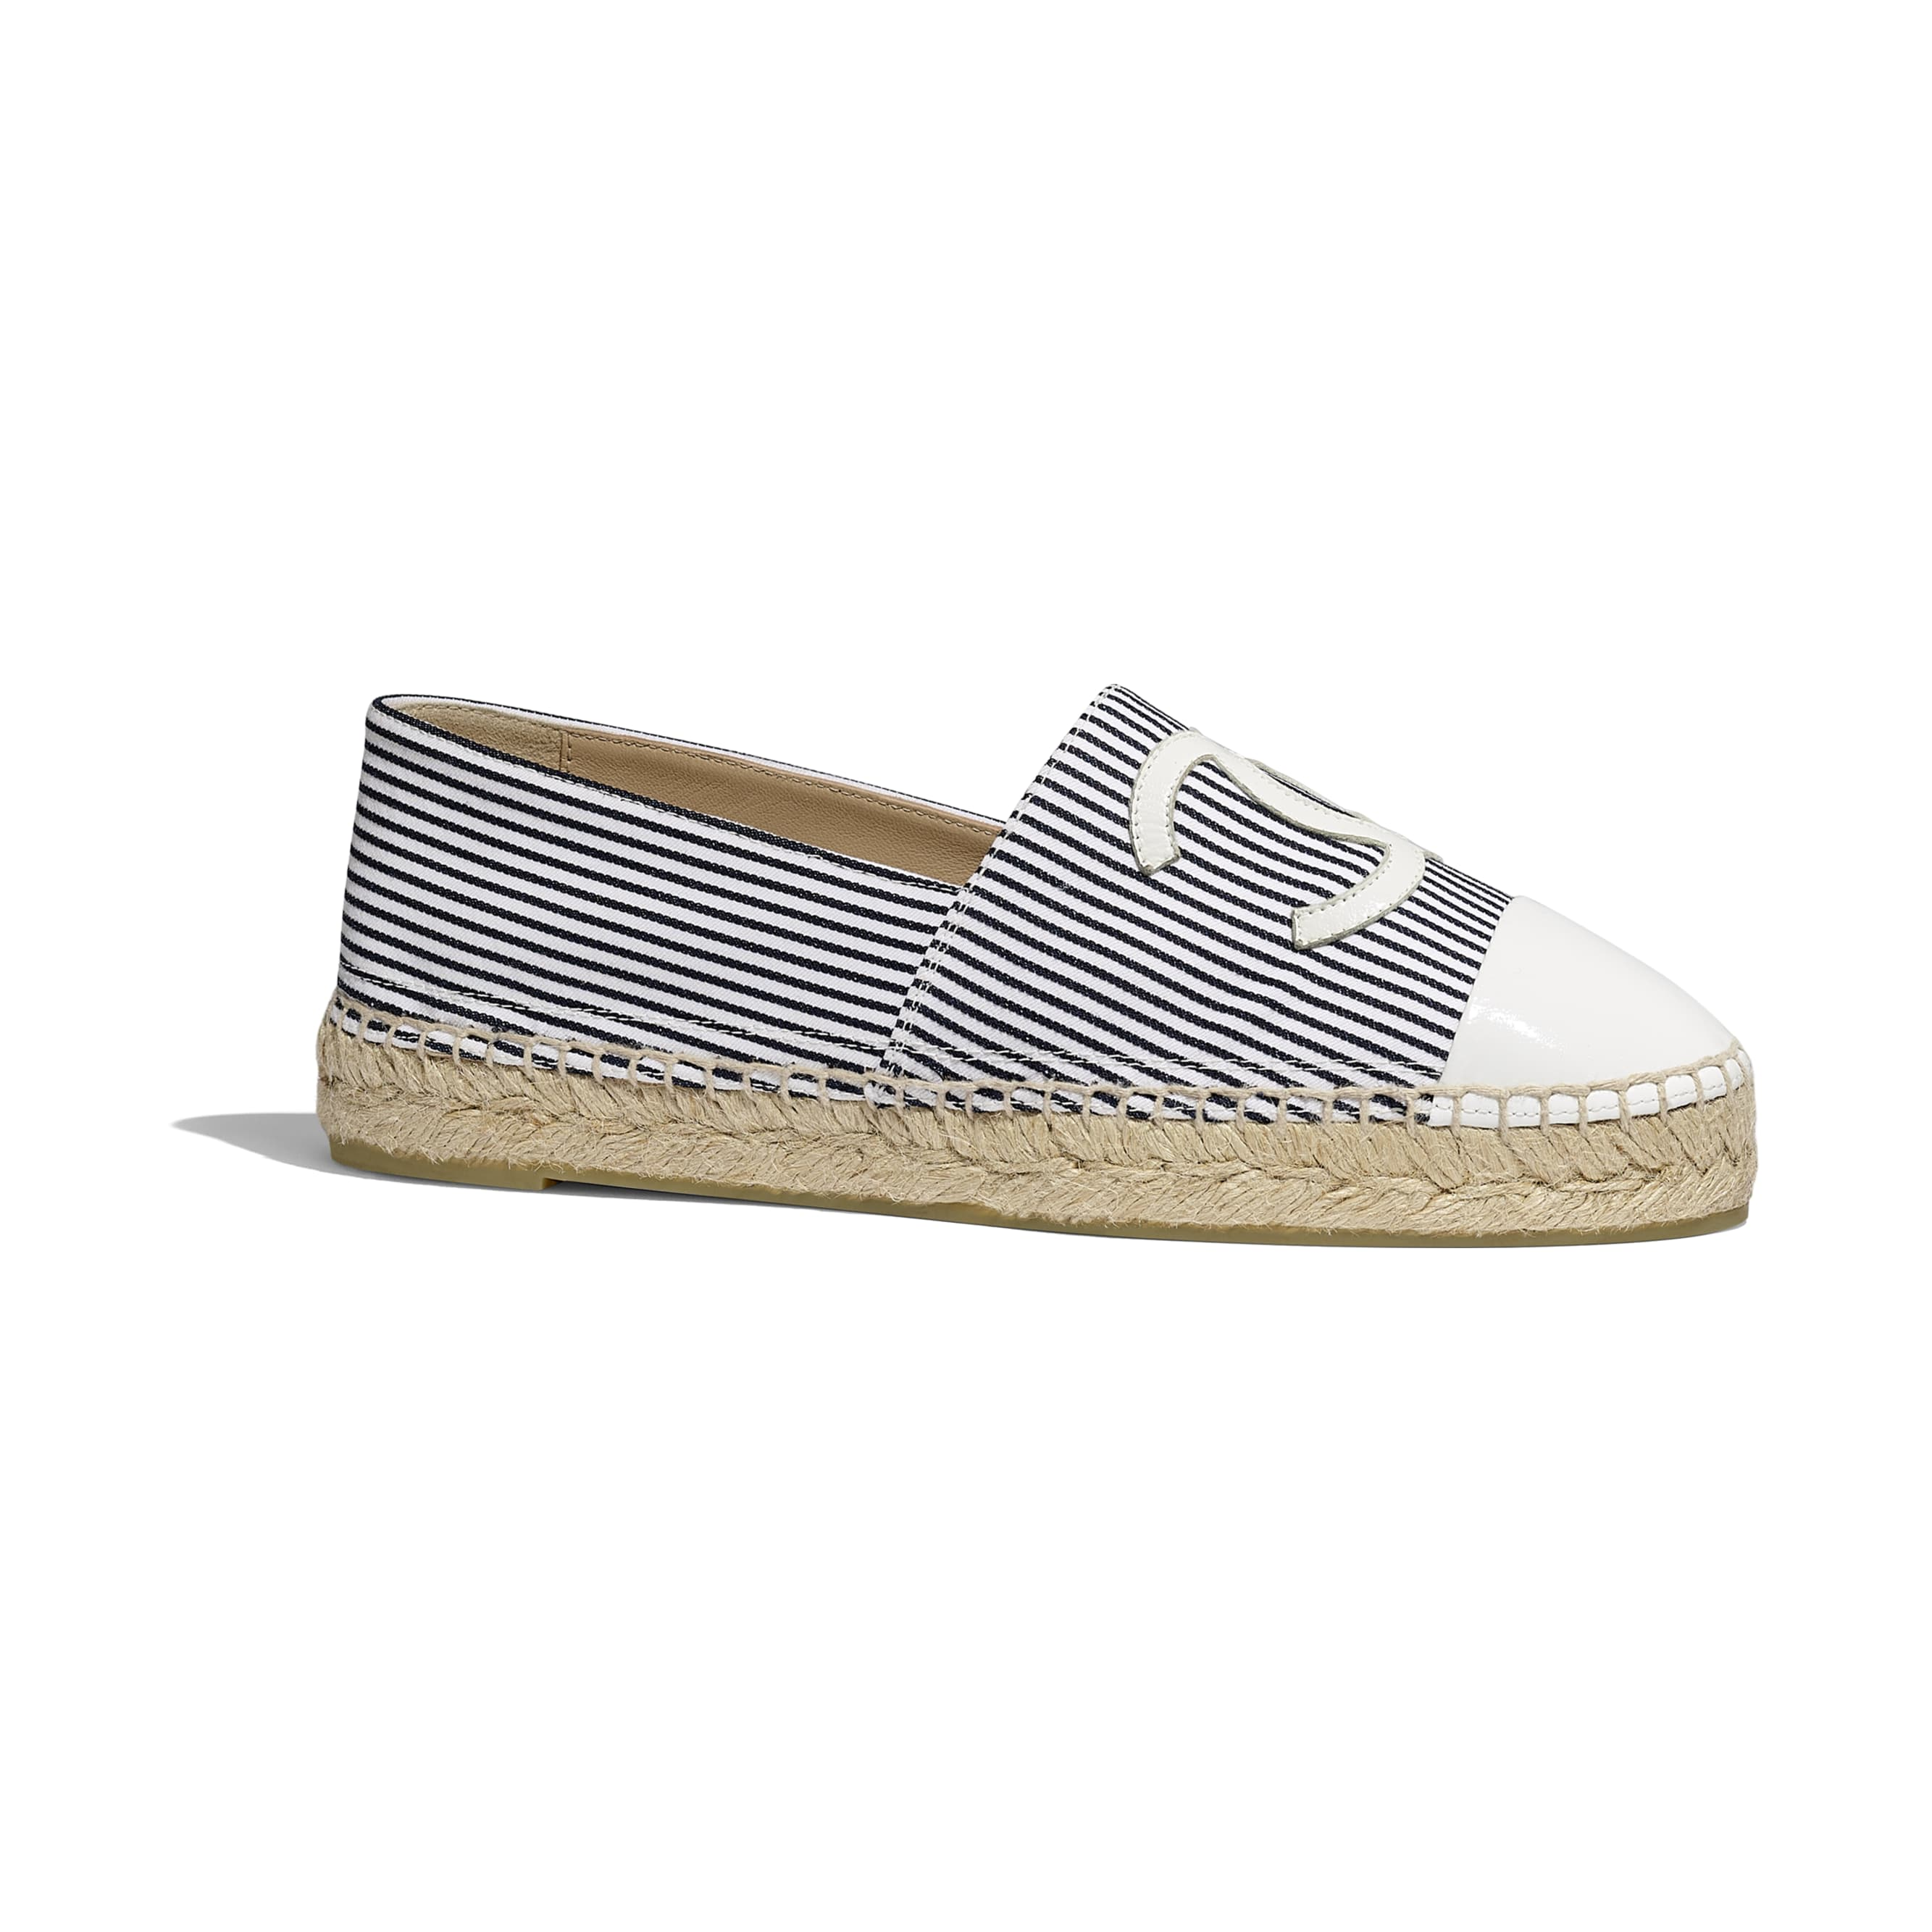 Espadrilles - Navy Blue, Ivory & White - Tweed & Patent Calfskin - Default view - see standard sized version